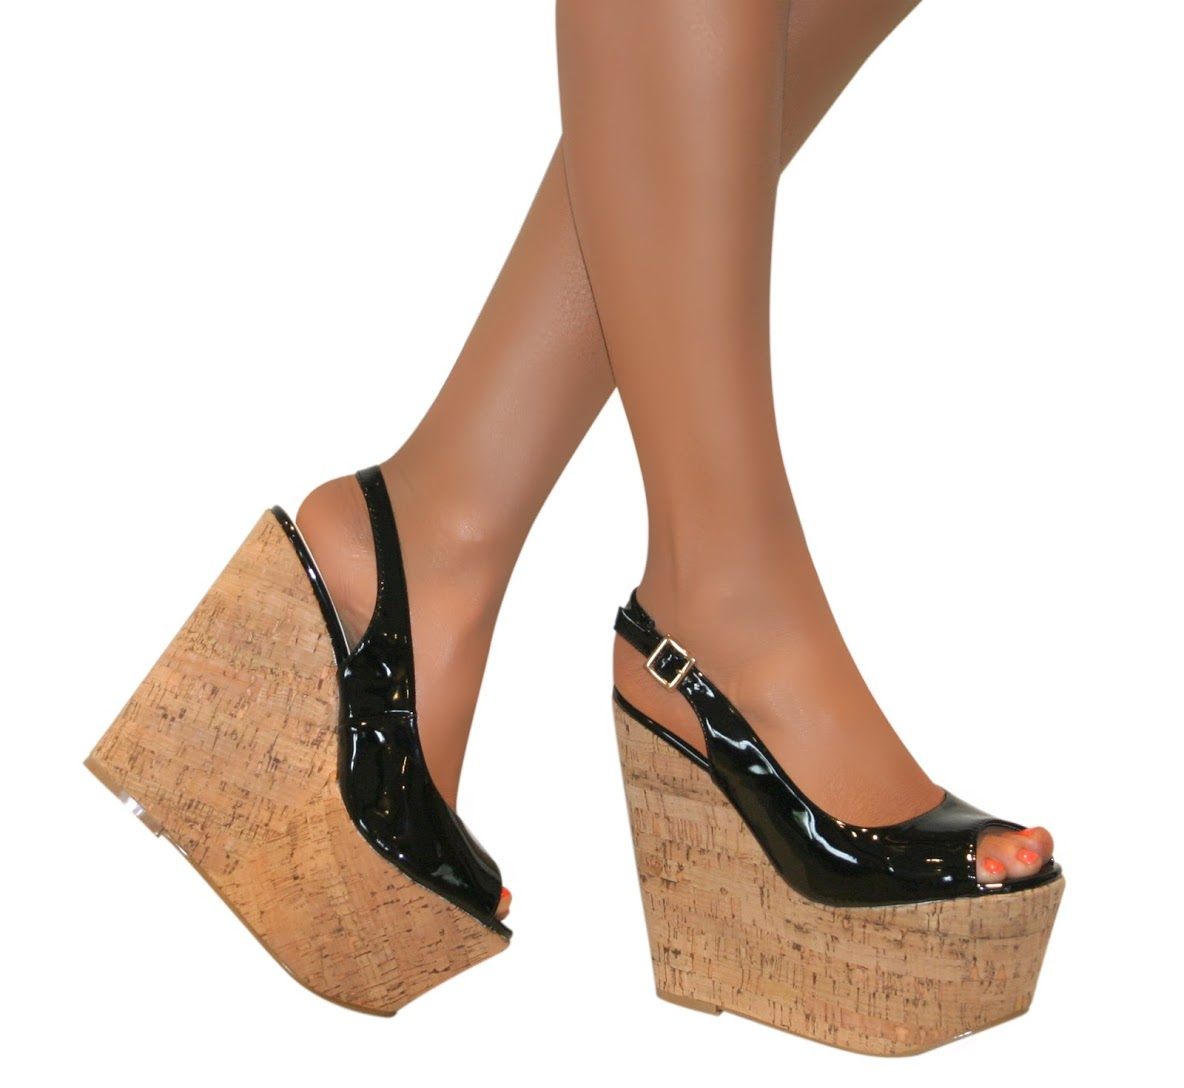 Heels & Wedges. Free People is already known as the go-to brand when it comes to finding some of the best fashion-forward shoes out there. And this is especially true when it comes to high heels & wedges.